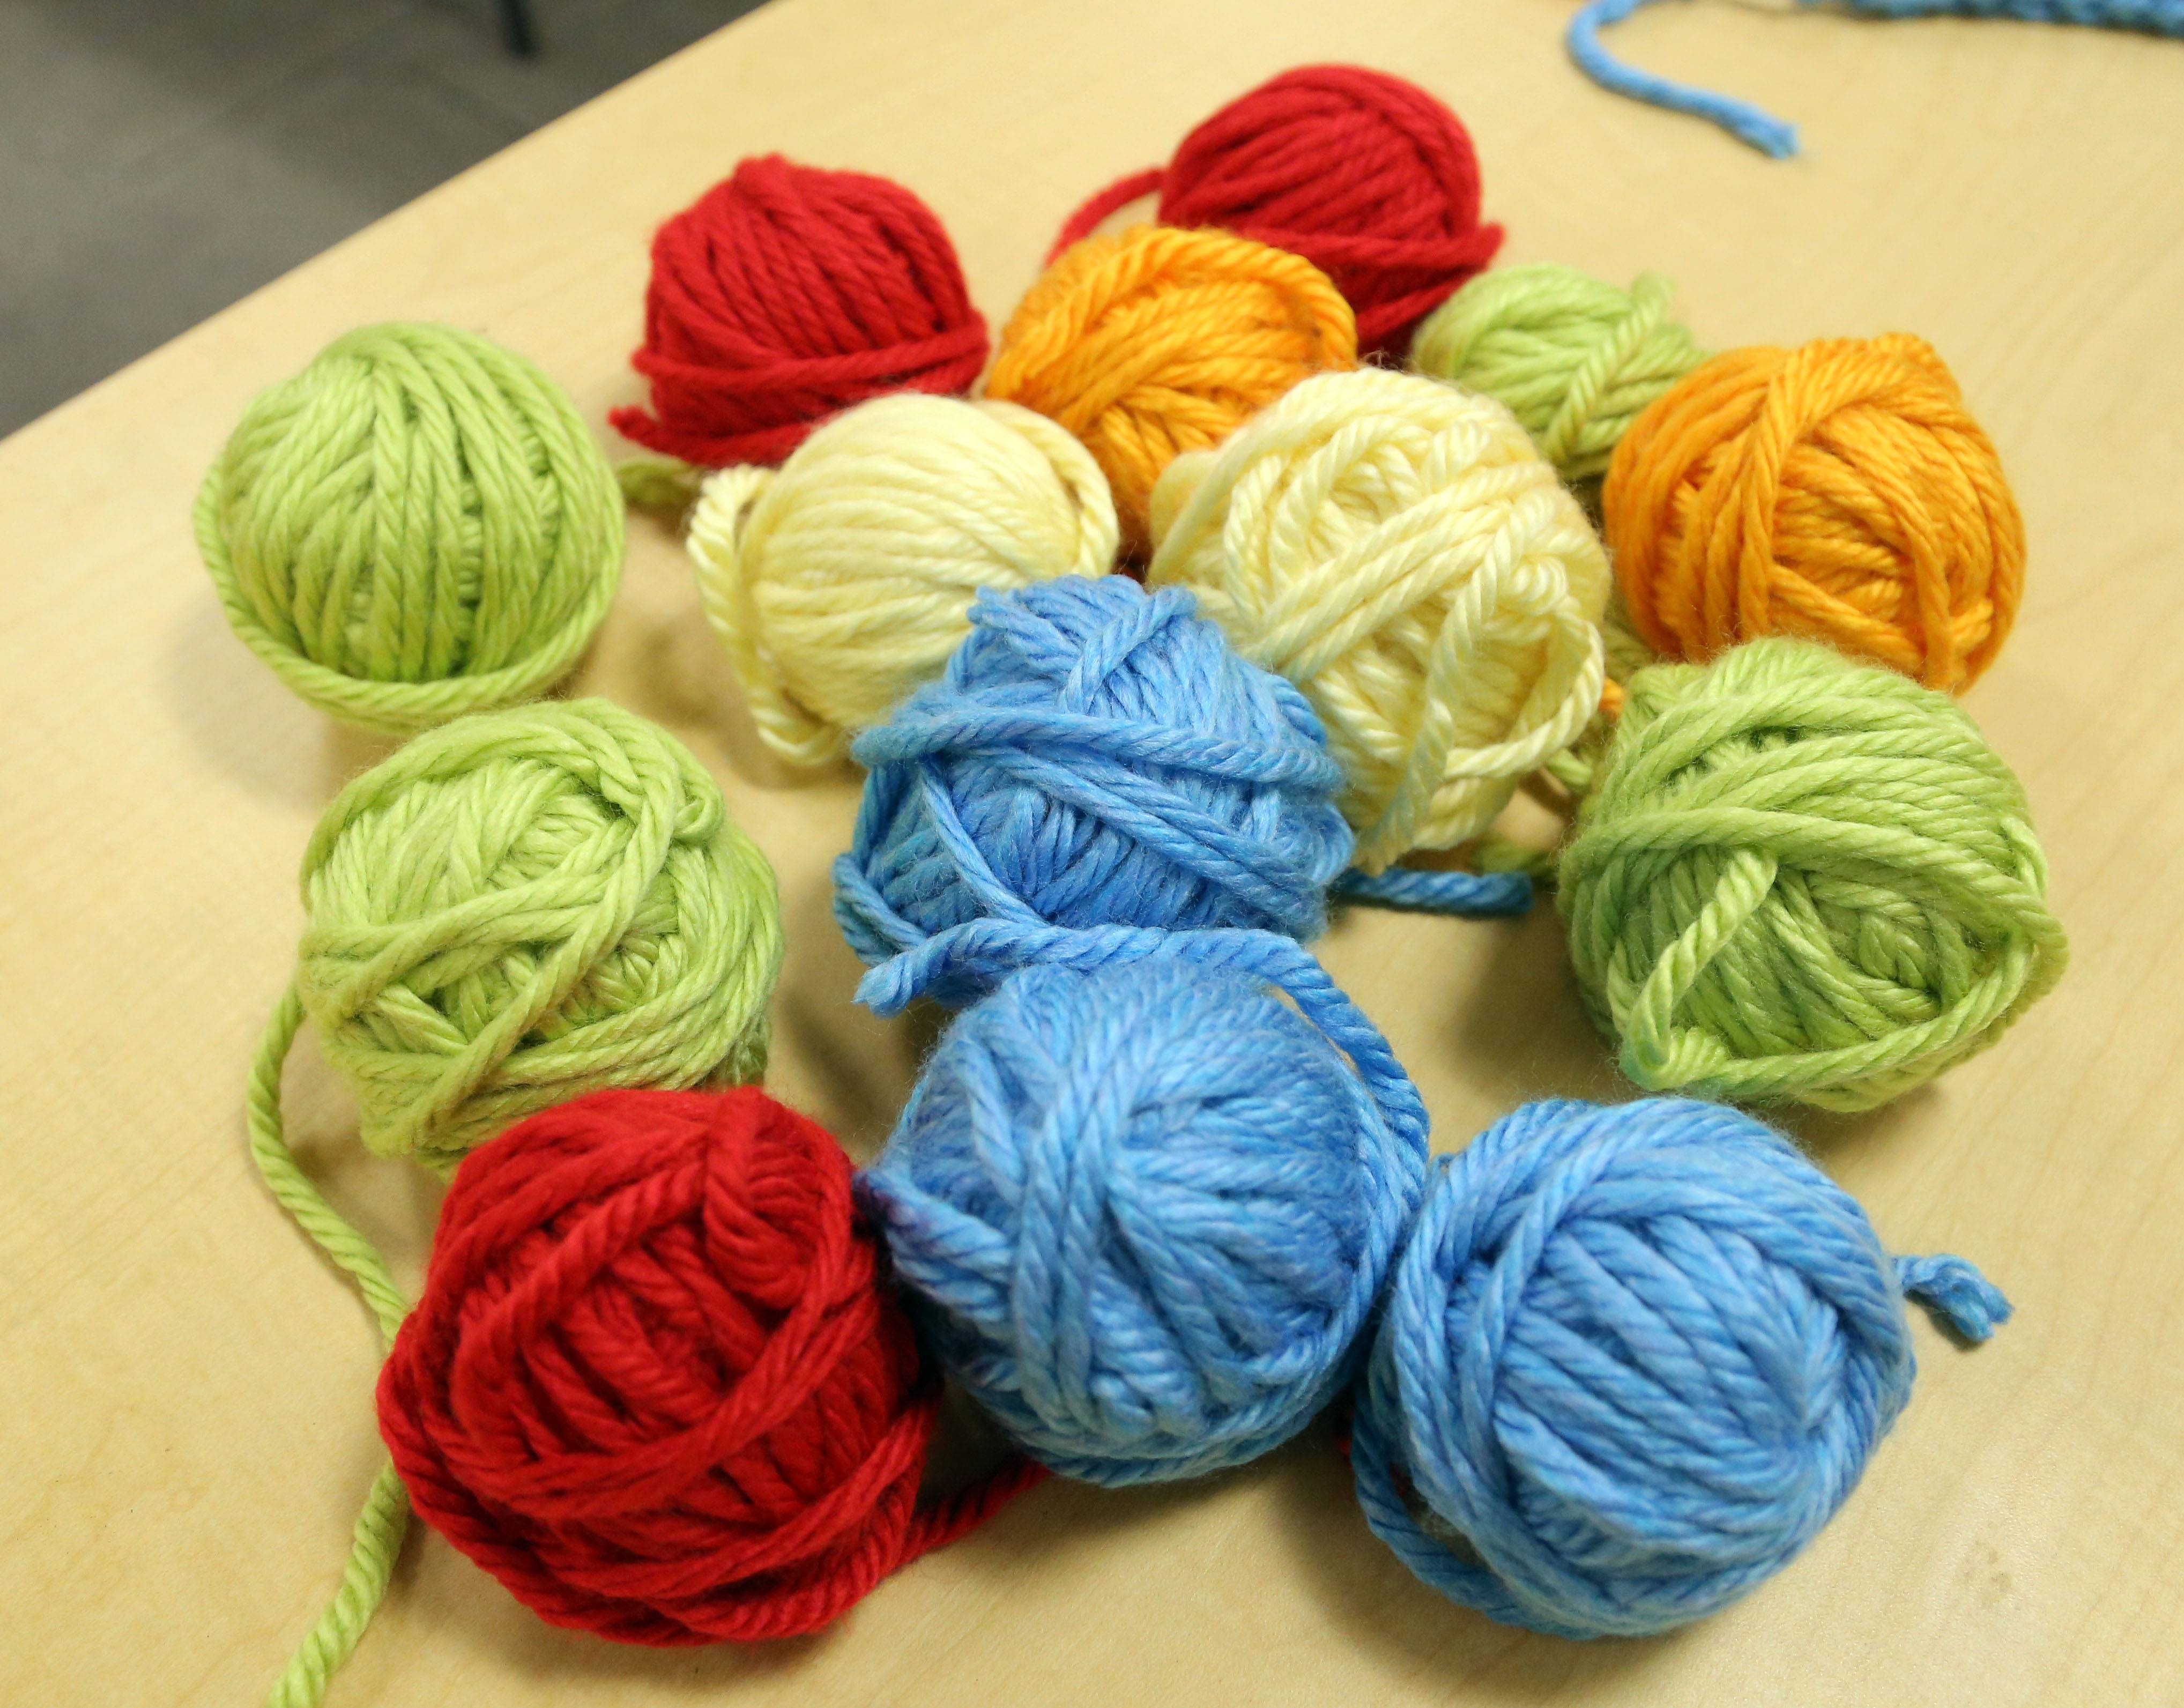 Girls in grades 3-5 participated in a finger-knitting program at Cook Park Library in Libertyville.